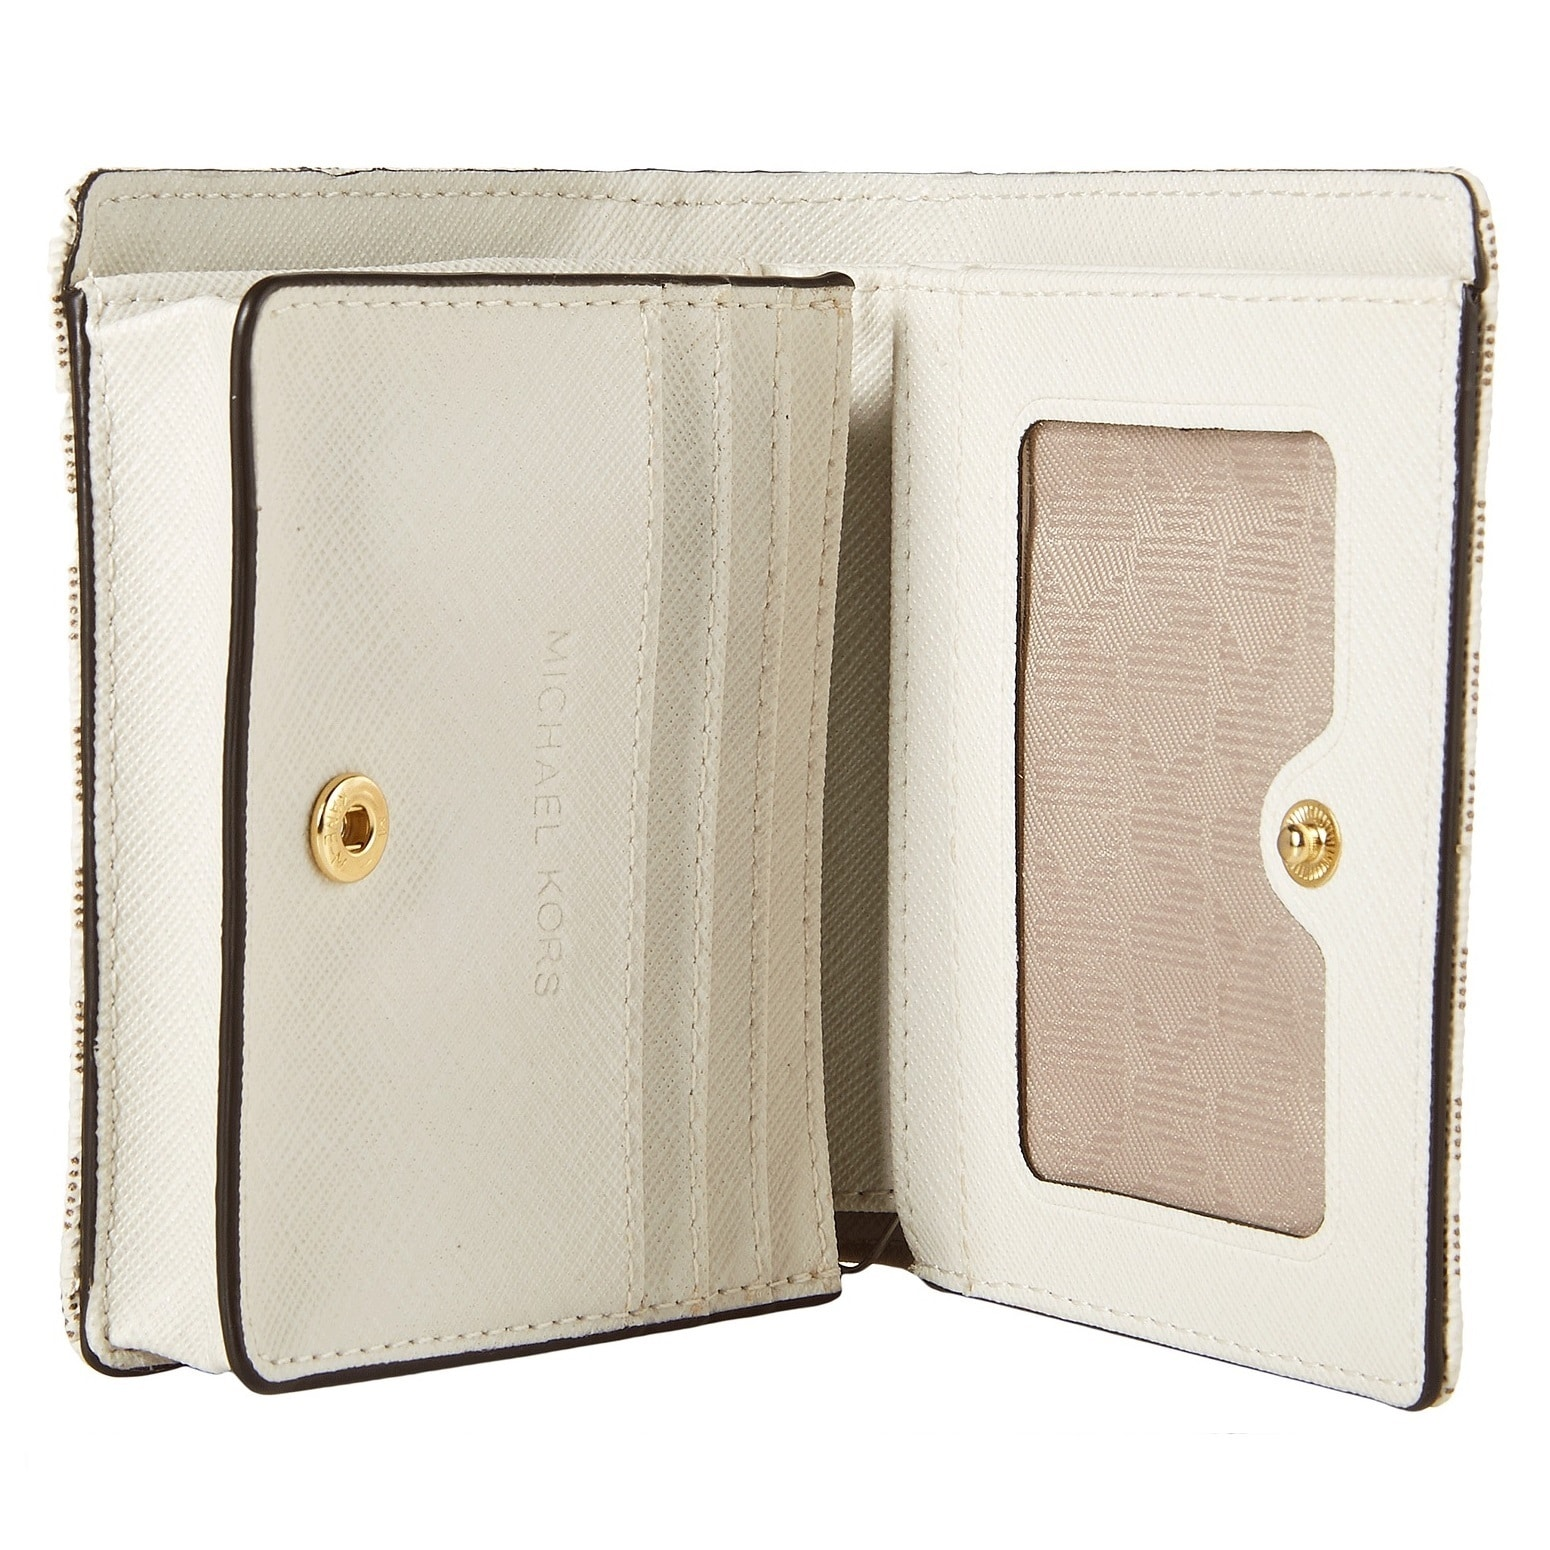 c074073f0585 Shop Michael Kors Jet Set Travel Vanilla Carry All Card Case Wallet - Free  Shipping Today - Overstock - 12186068